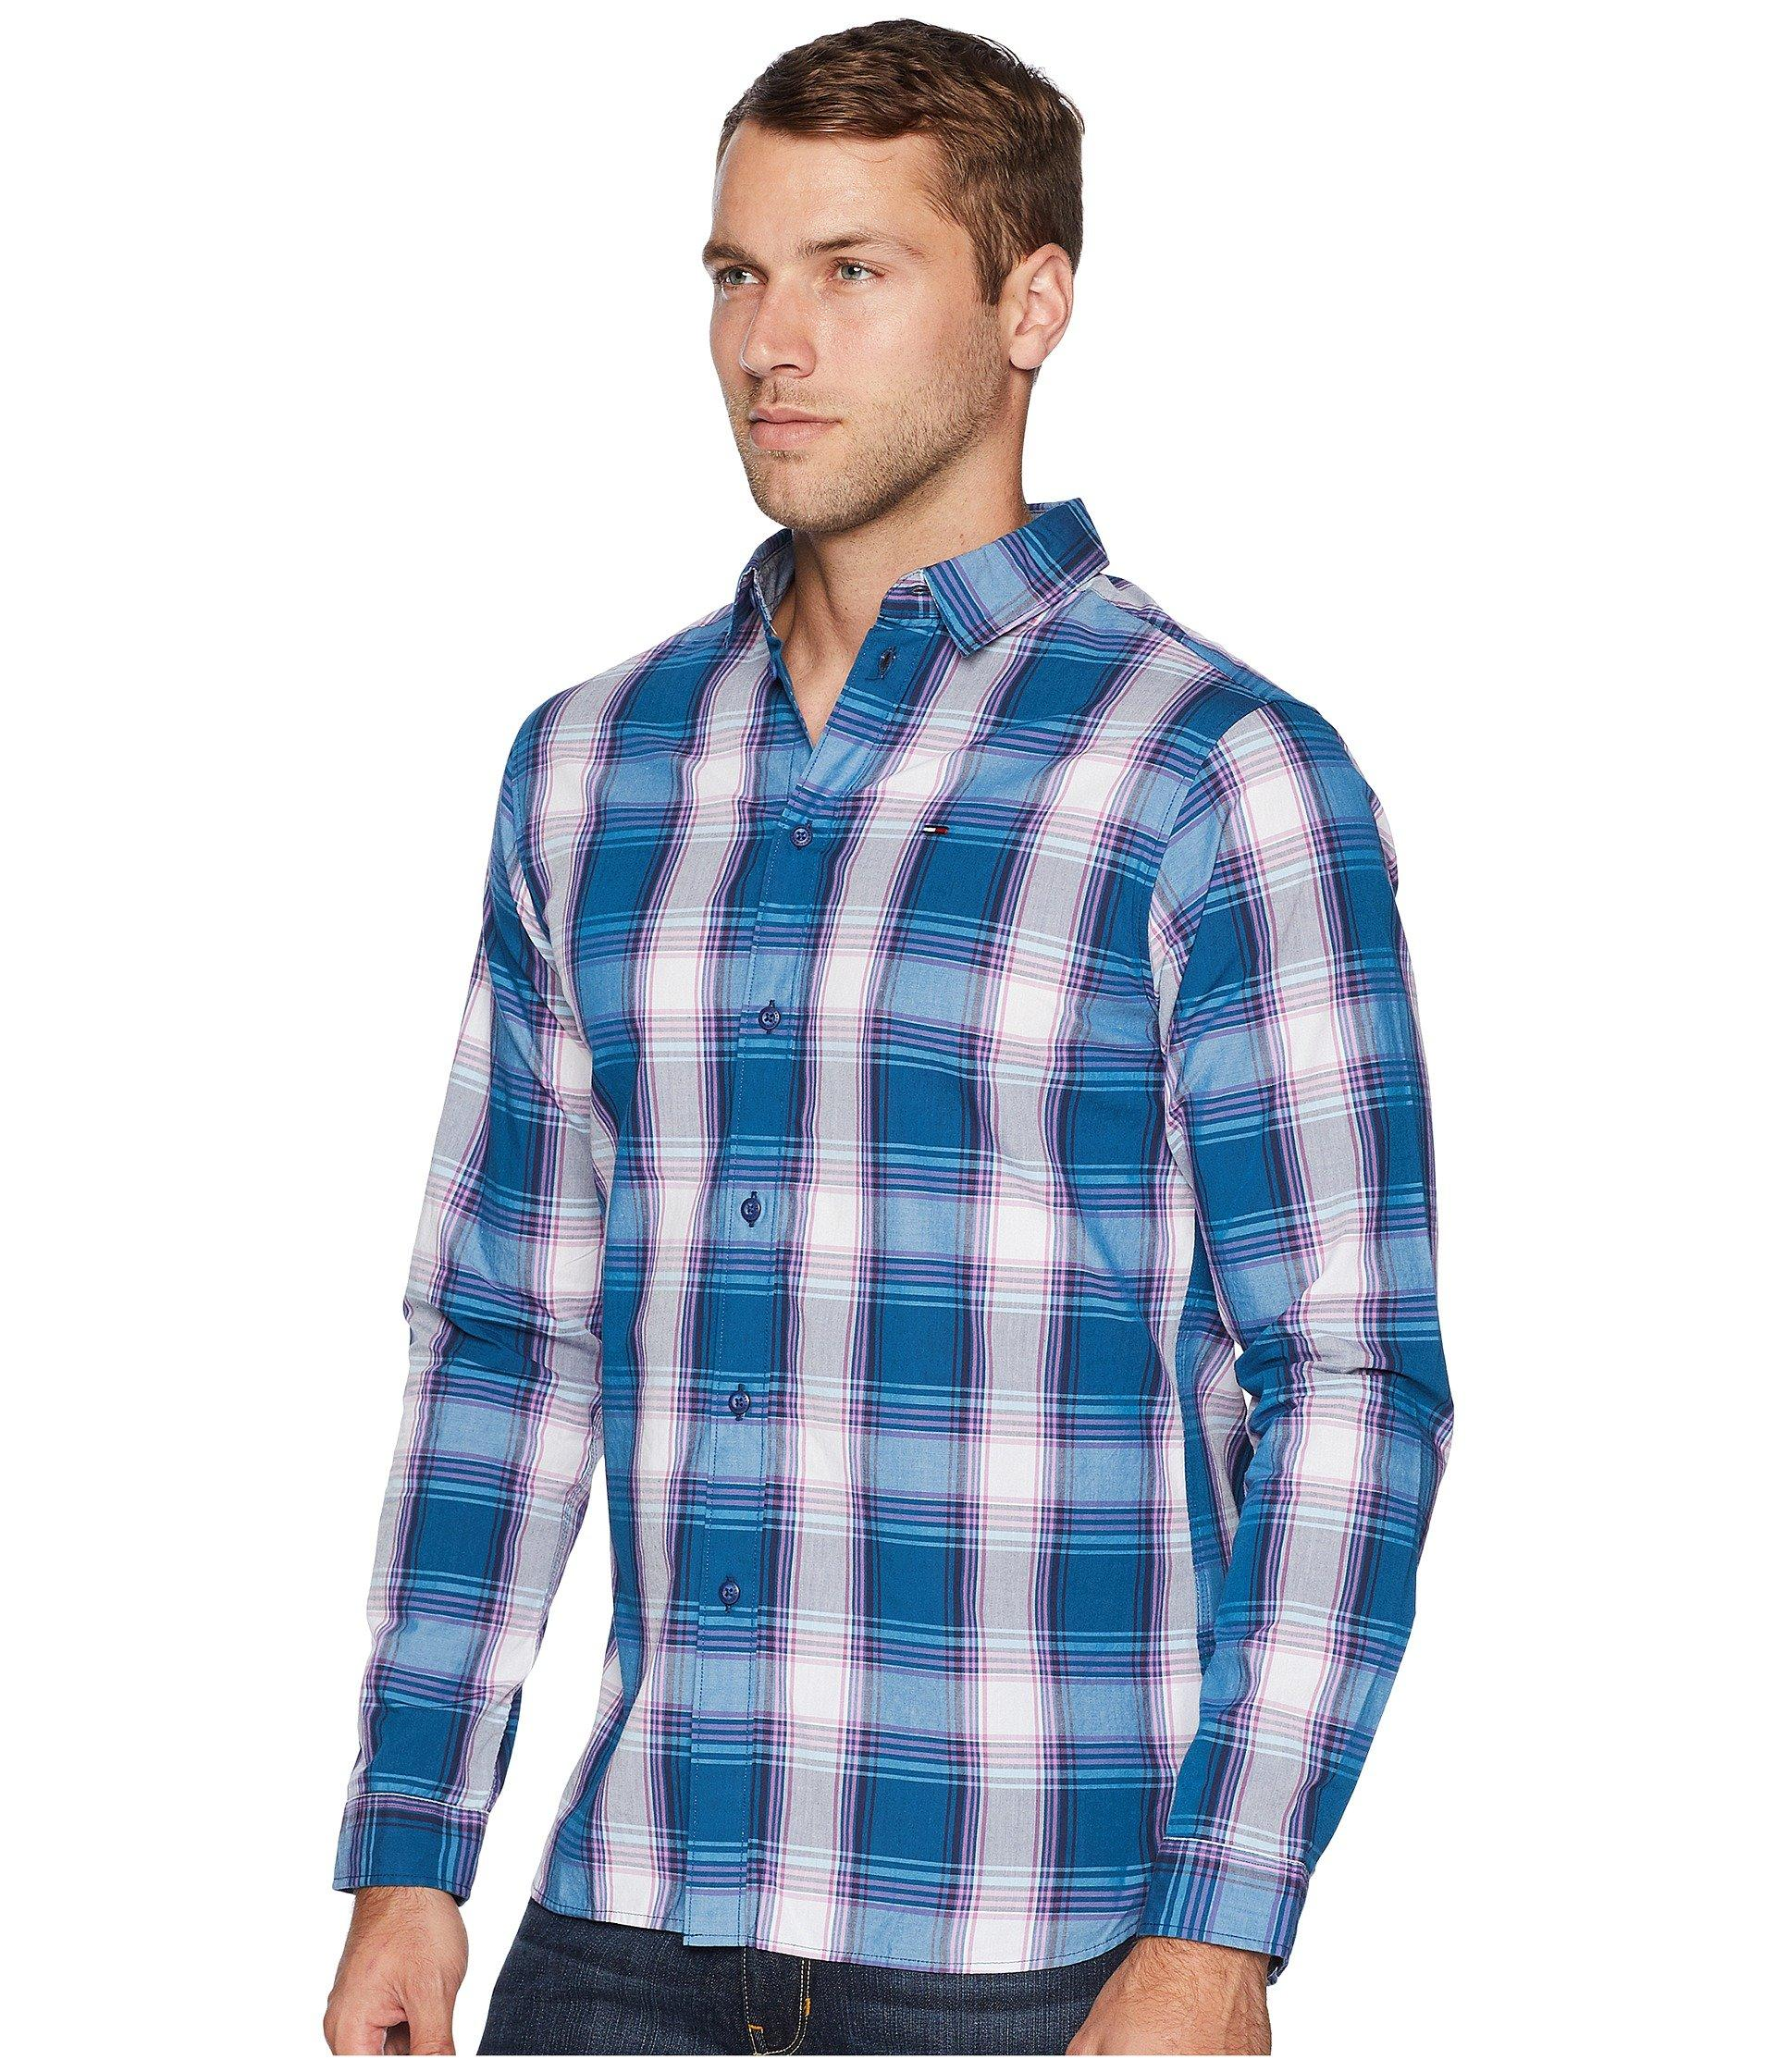 d21691b1a570 Lyst - Tommy Hilfiger Essential Check Shirt in Blue for Men